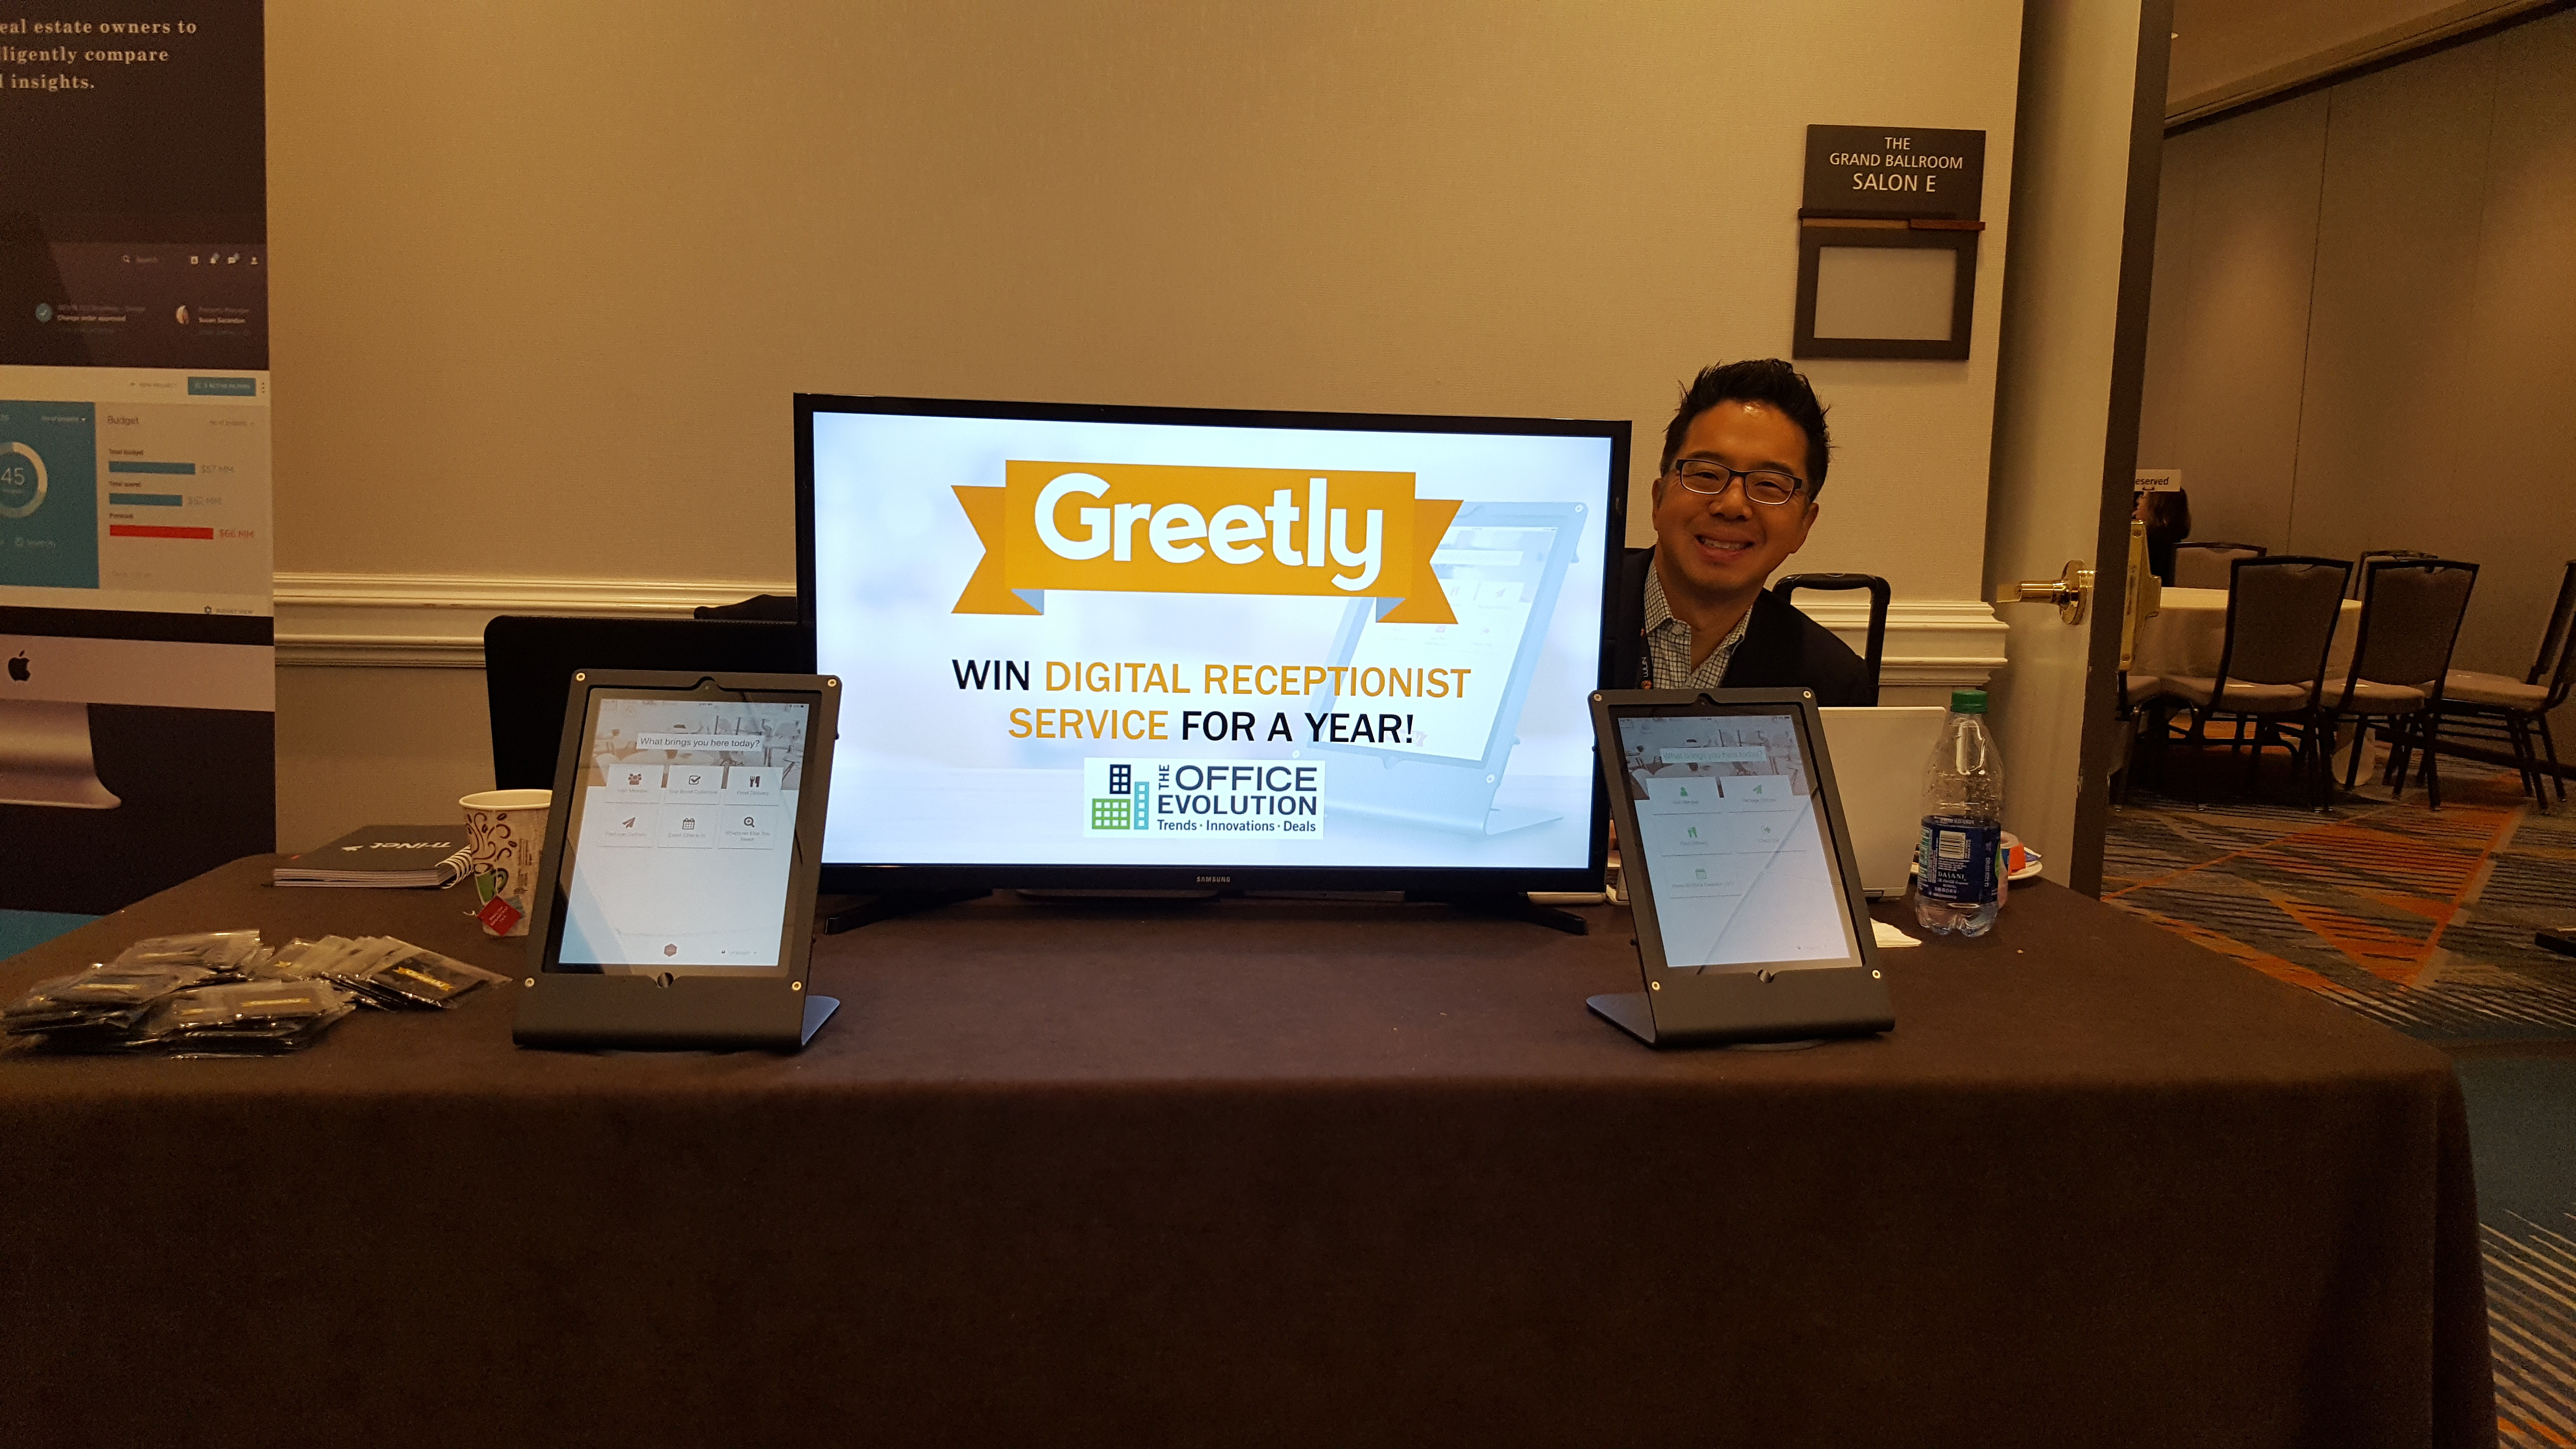 greetly-ipad-sign-in-app-coworking-events-calendar